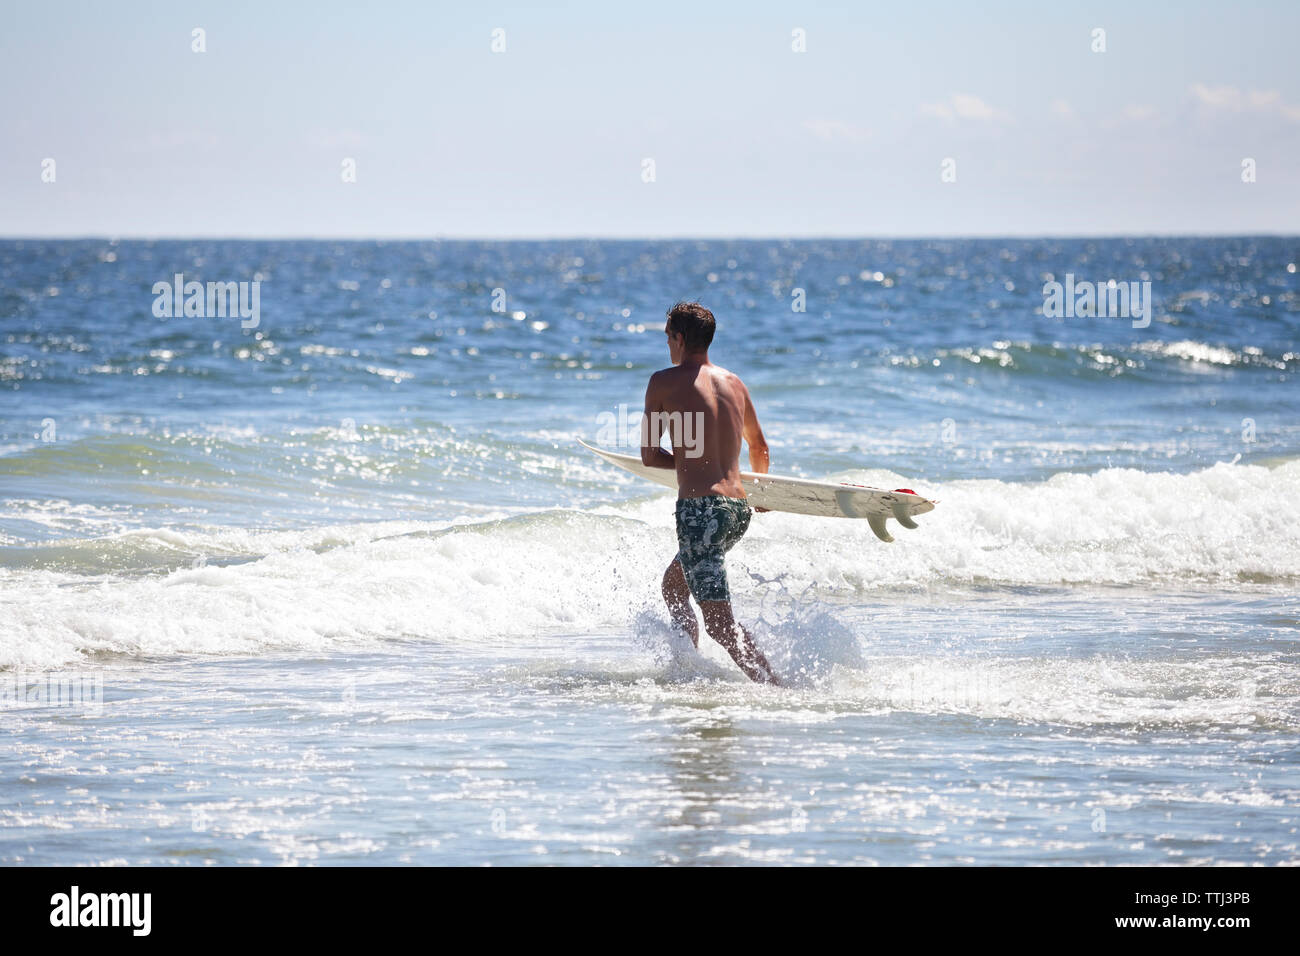 94d2b528b0 Old Man In Swimming Trunks Stock Photos & Old Man In Swimming Trunks ...